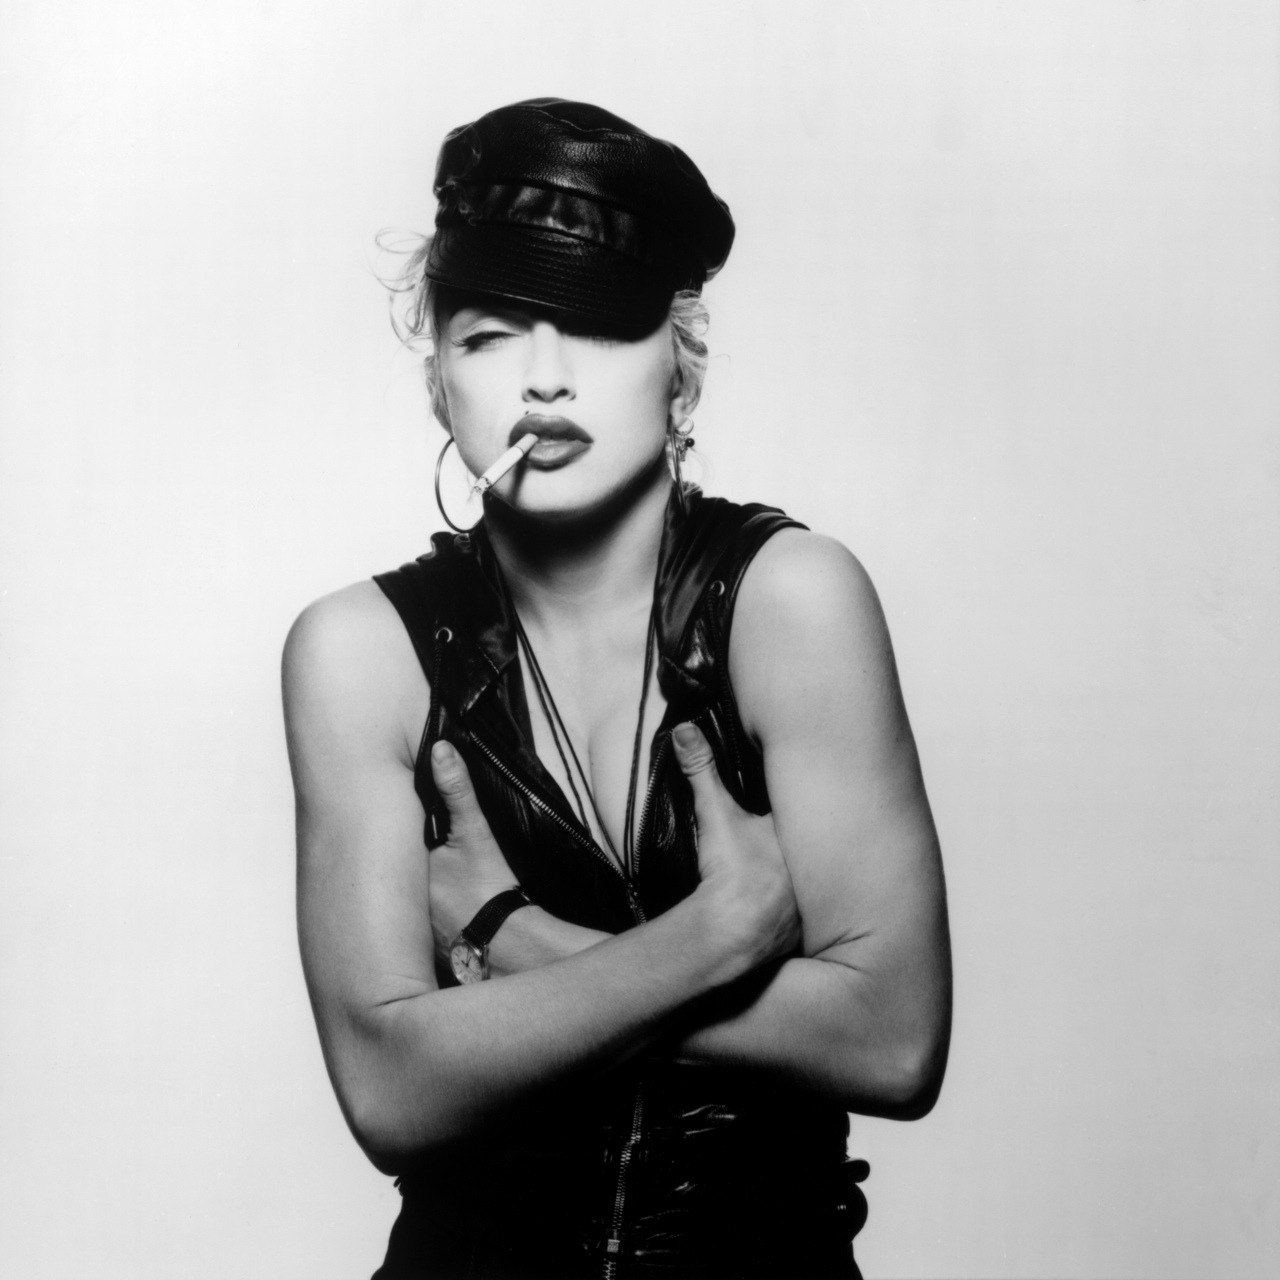 Madonna photographed by Patrick Demarchelier in 1991